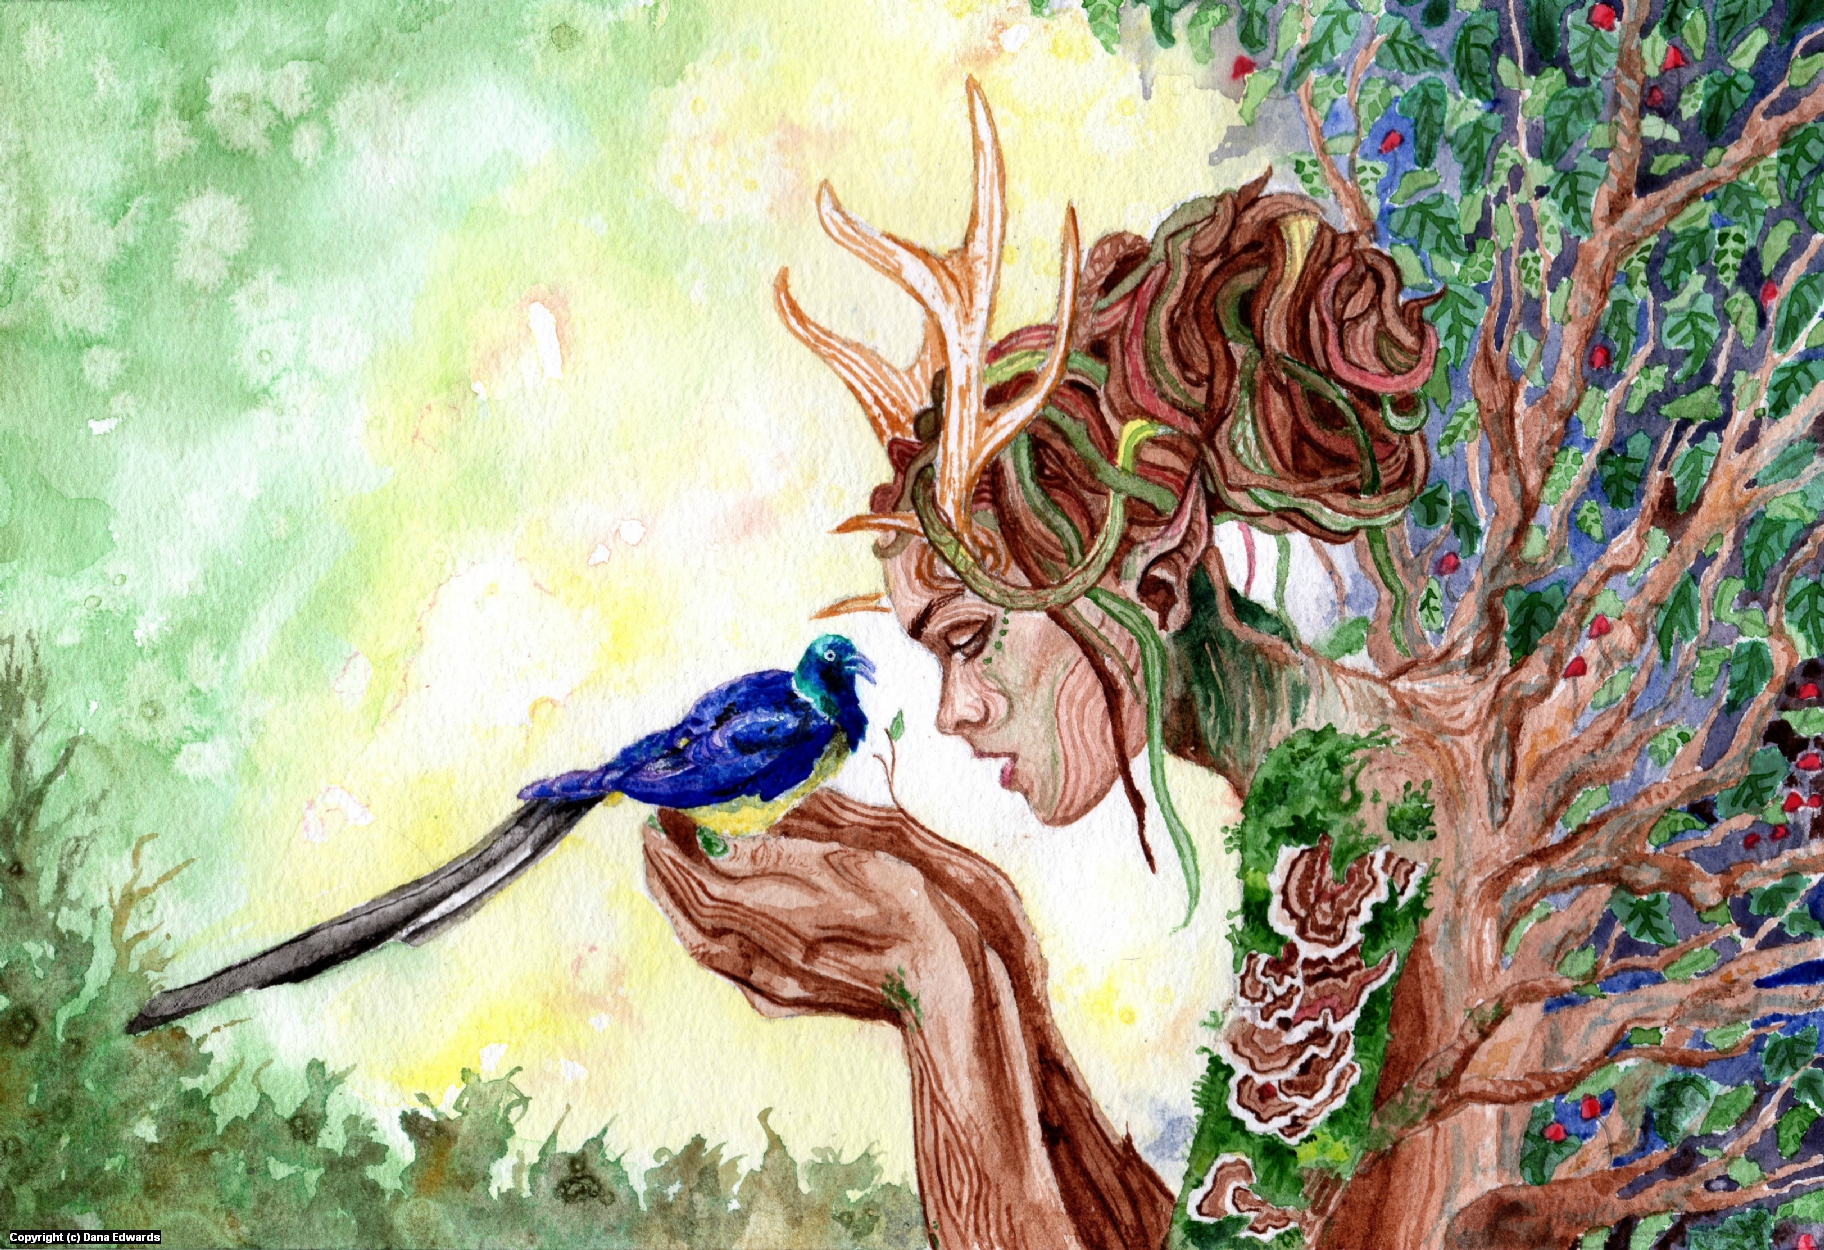 Dryad and Starling Artwork by Dana Edwards